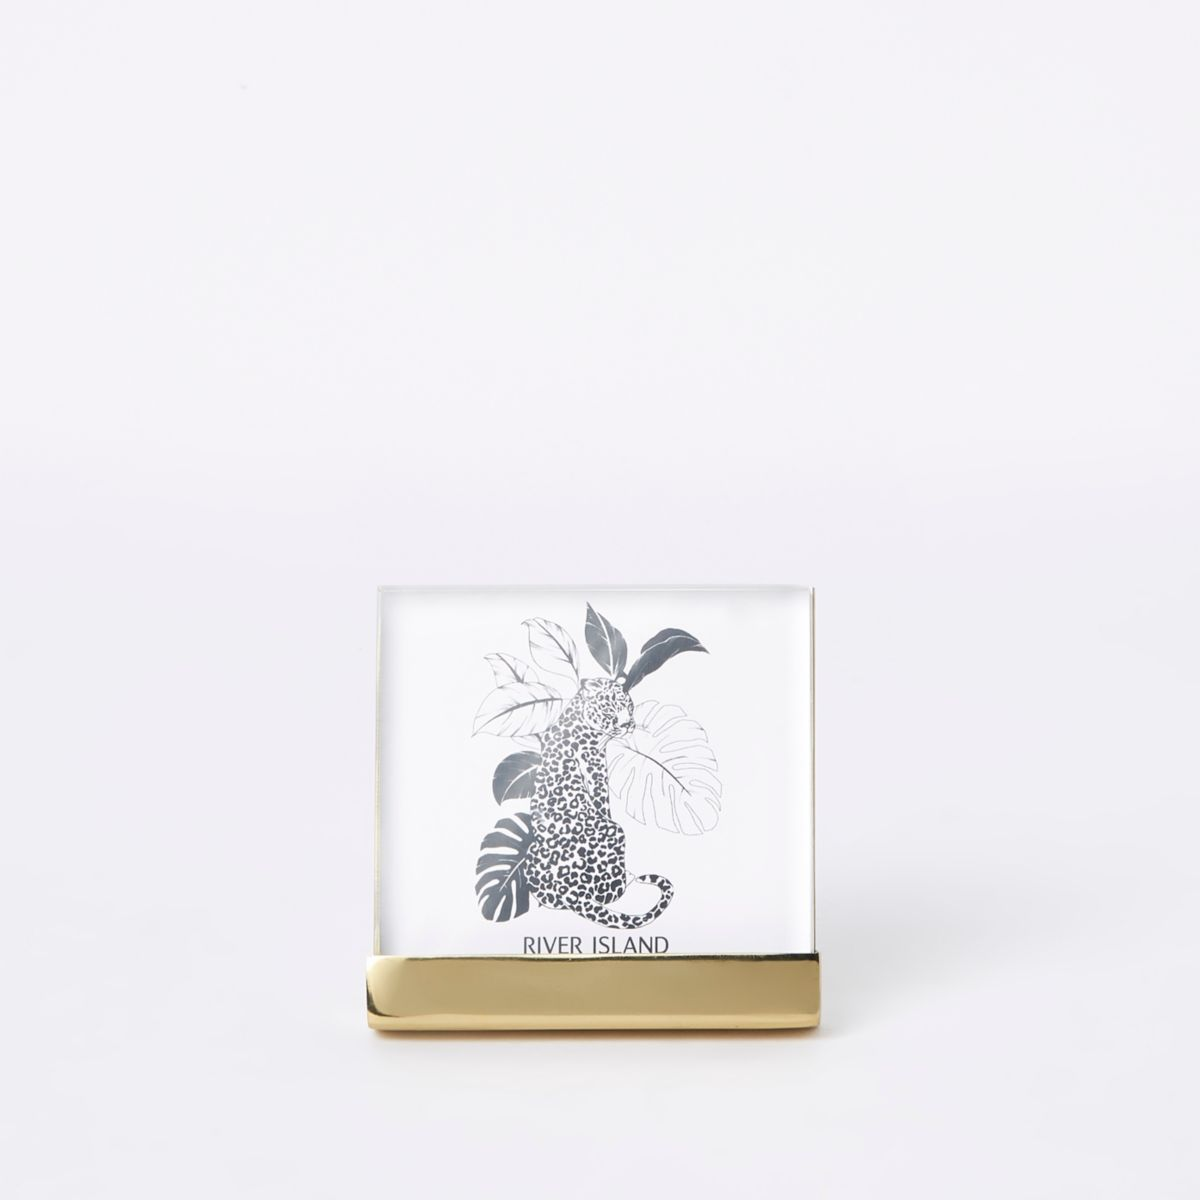 Gold perspex small photo frame 4x4 inches